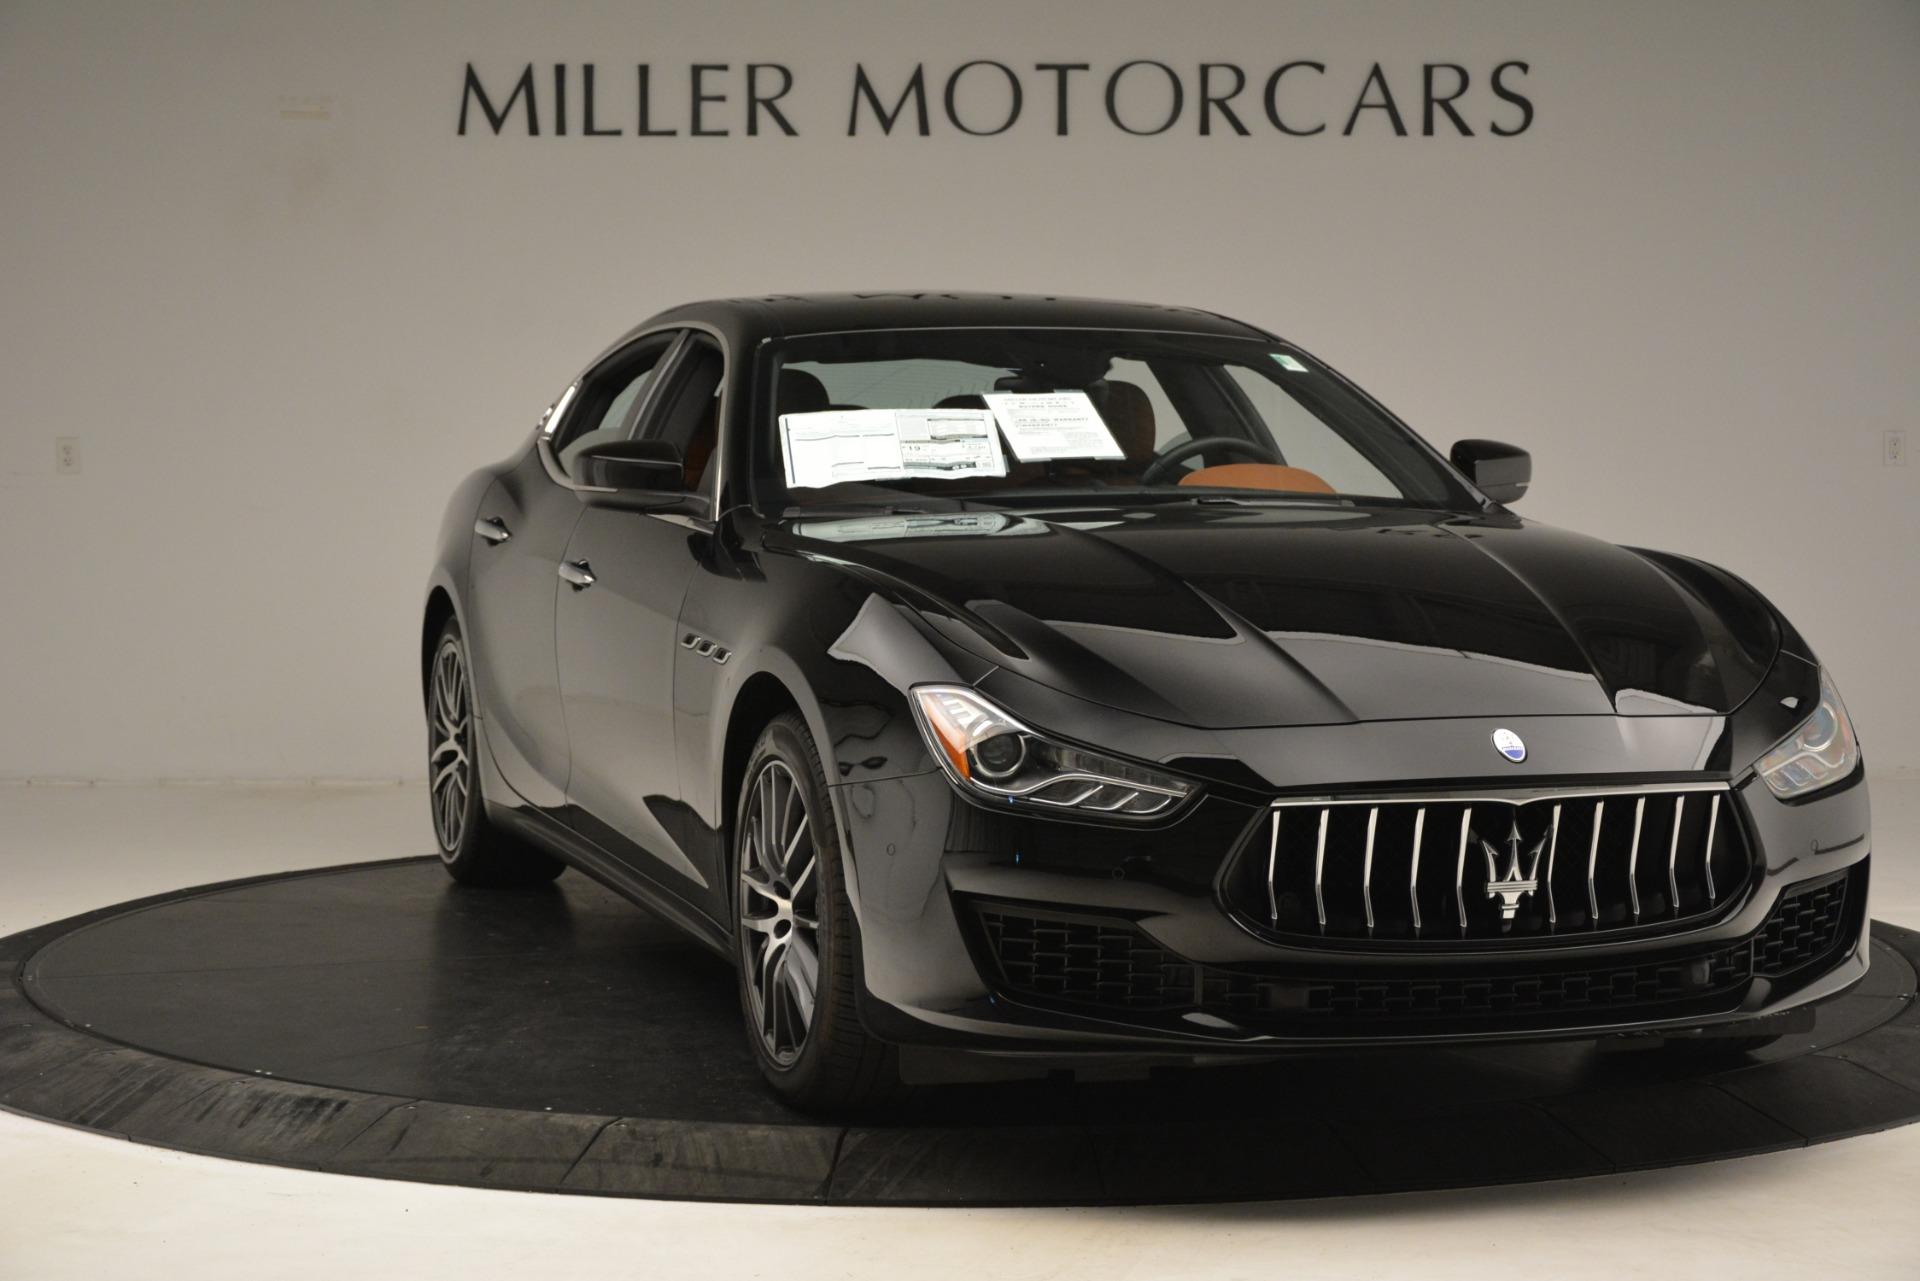 New 2019 Maserati Ghibli S Q4 For Sale In Westport, CT 2792_p11